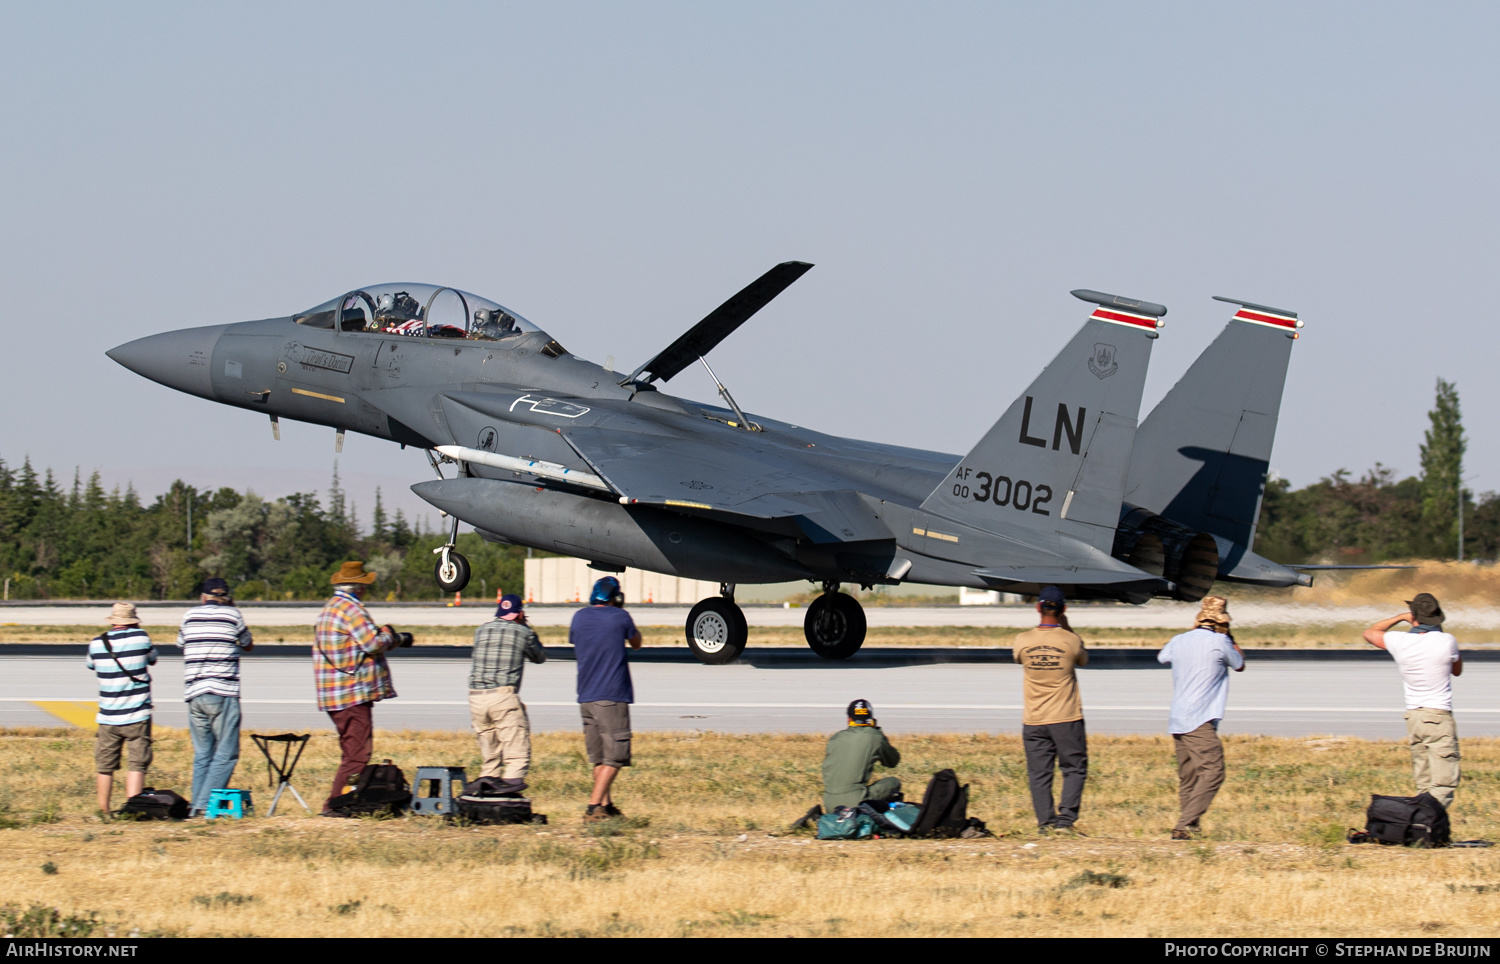 Aircraft Photo of 00-3002 / AF00-3002 | McDonnell Douglas F-15E Strike Eagle | USA - Air Force | AirHistory.net